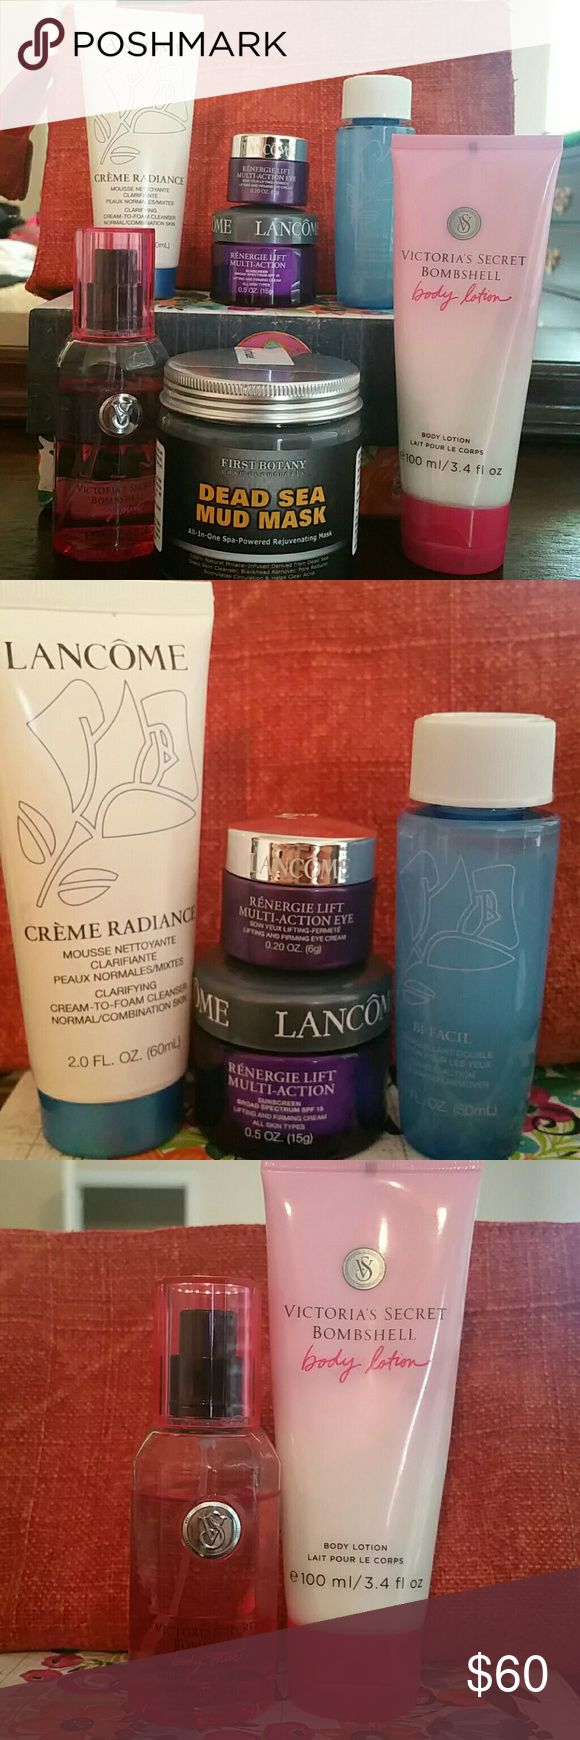 Lancome, VS, Beauty Bundle All Lancome is brand new never used.  Creme Radiance Cleanser 2.0 Oz Bi-Facial 1.7oz Renergie Lift Multi action 0.5 Oz Renergie Lift Eye 0.2 Oz  Victoria Secret Bombshell  Body spray and lotion 3/4 full  First Botany Dead Sea Mud Mask 8.8 oz Lancome Makeup